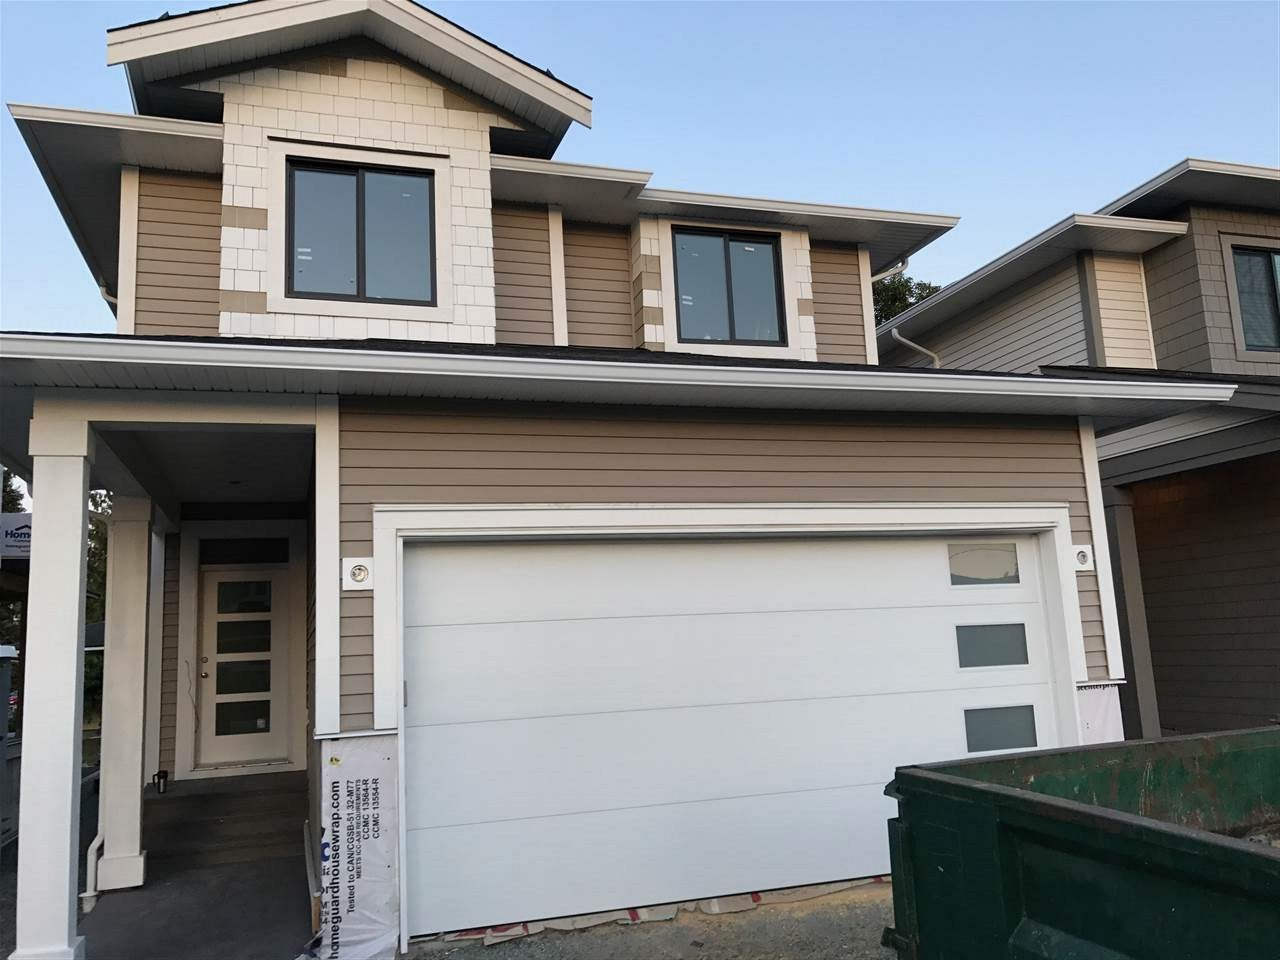 Over 2400 sq. ft. lovely finished home, with attention to details. Kitchen includes quartz countertop, beautiful cabinets, 9 ft. ceilings. Basement finished with 4th bedroom, 4 pc bathroom, laundry connections pre plumbed for extra sink in basement. Air conditioning pre-plumbed. Fenced and landscaped yard.